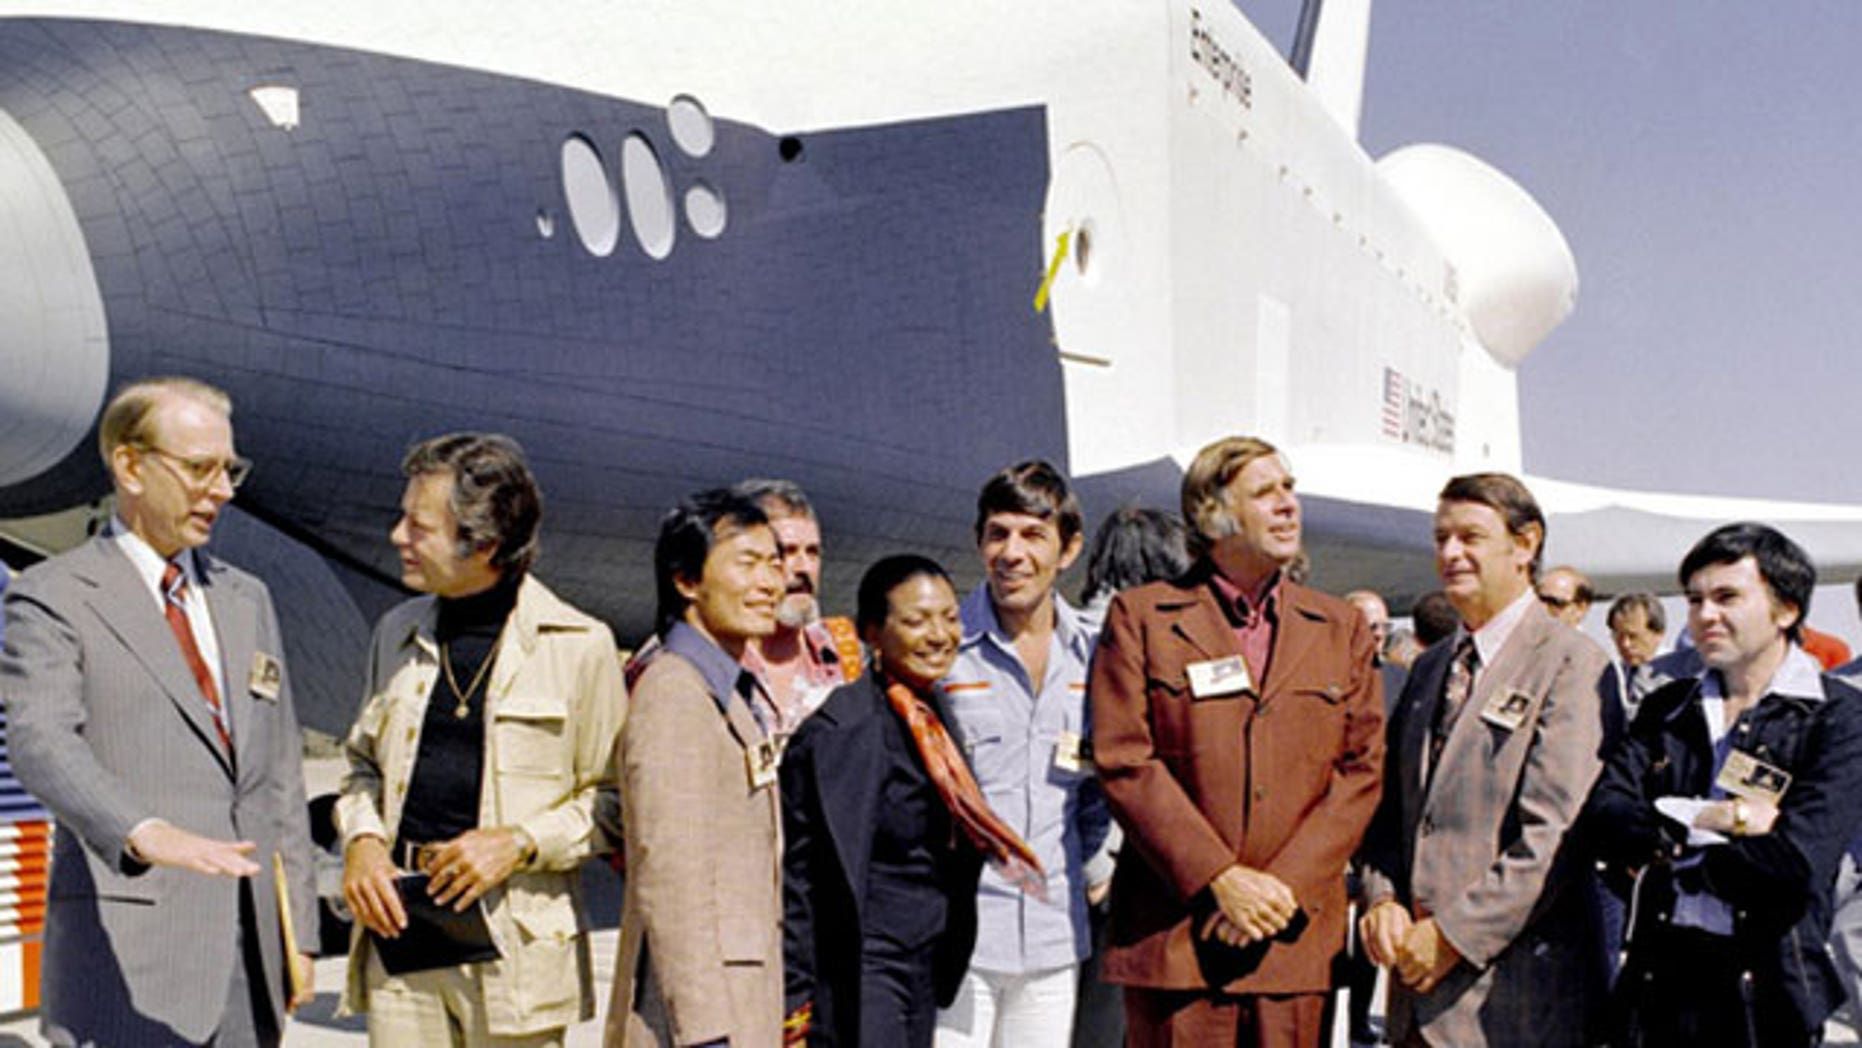 "n 1976, NASA's space shuttle Enterprise rolled out of the Palmdale manufacturing facilities and was greeted by NASA officials and cast members from the 'Star Trek' television series. From left to right they are: NASA Administrator Dr. James D. Fletcher; DeForest Kelley, who portrayed Dr. ""Bones"" McCoy on the series; George Takei (Mr. Sulu); James Doohan (Chief Engineer Montgomery ""Scotty"" Scott); Nichelle Nichols (Lt. Uhura); Leonard Nimoy (Mr. Spock); series creator Gene Rodenberry; an unnamed NASA official; and, Walter Koenig (Ensign Pavel Chekov)."